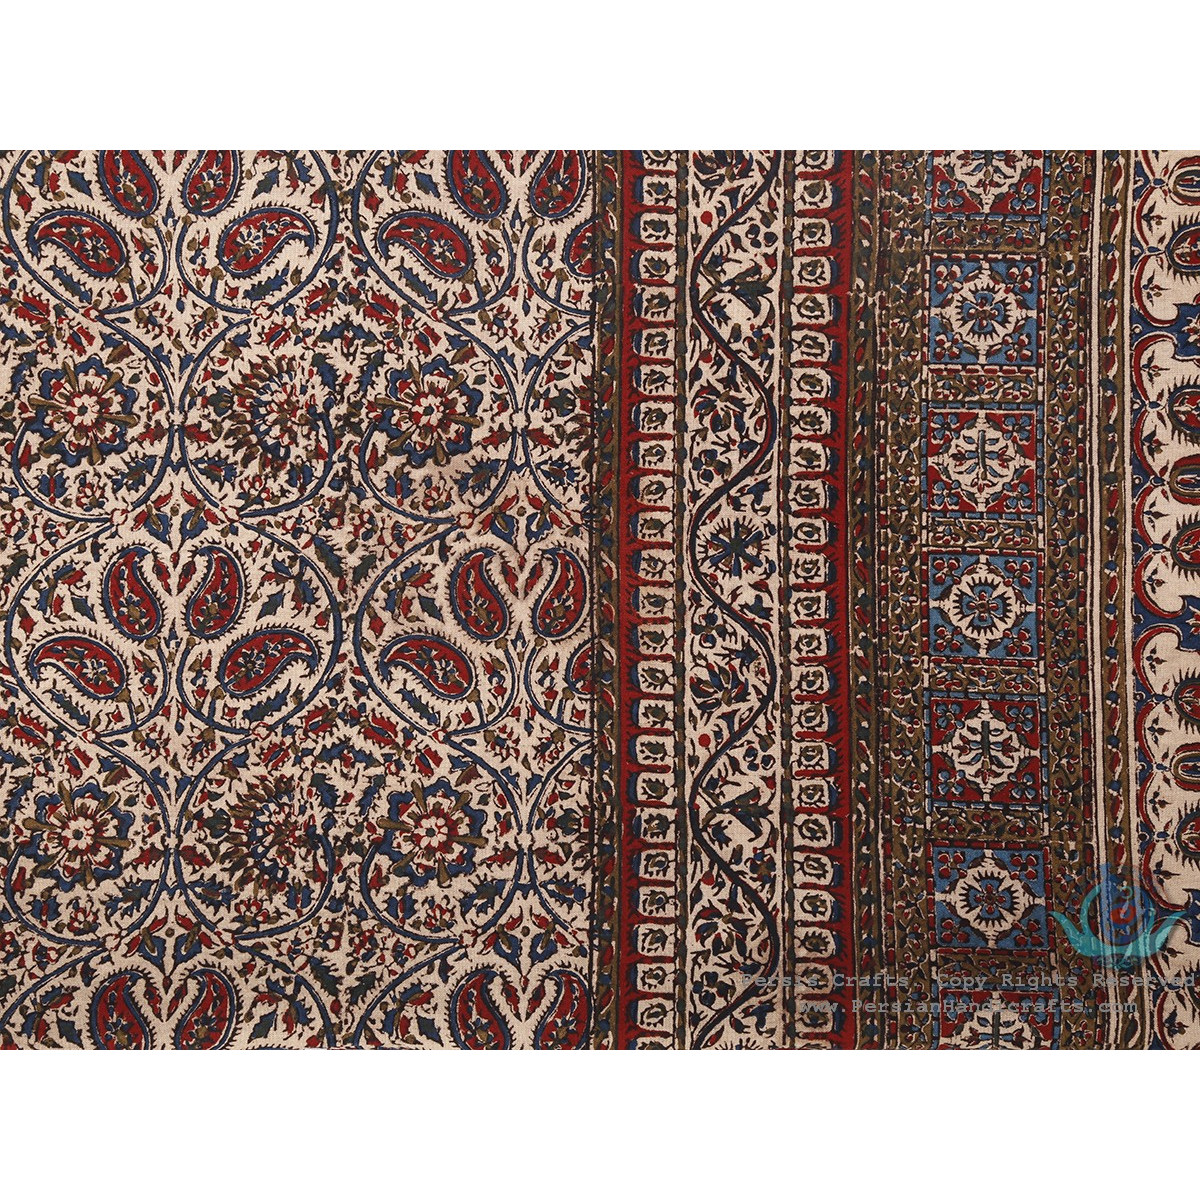 Vintage Look Persian Bote Jeghe Ghalamkar Tablecloth - HGH3901-Persian Handicrafts